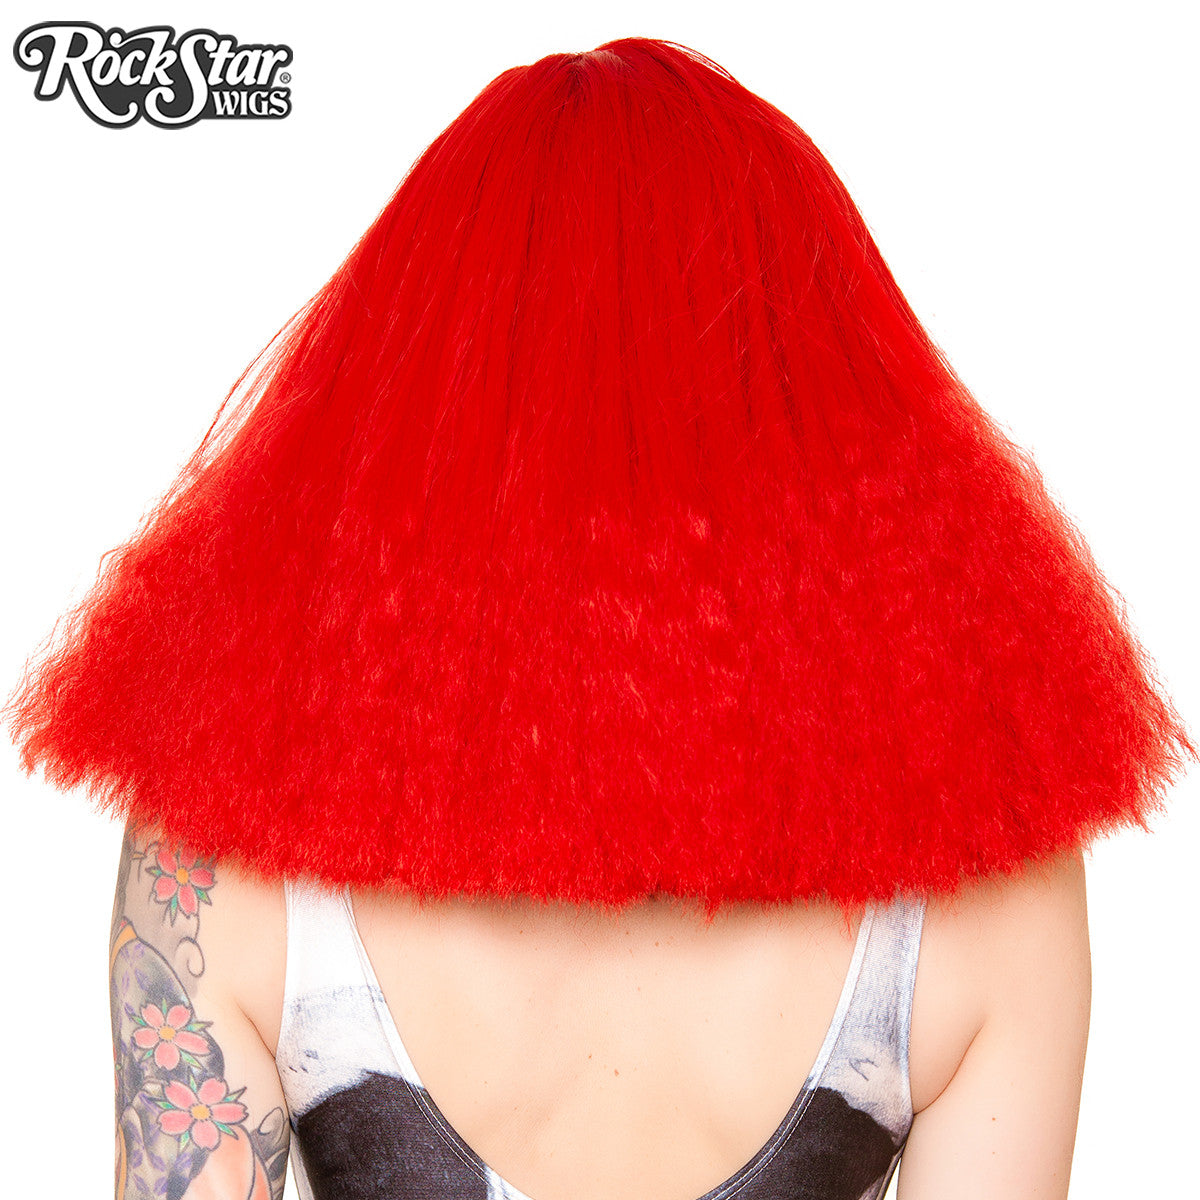 RockStar Wigs® <br> Dynamite™ Collection - Cherry Bomb -00161